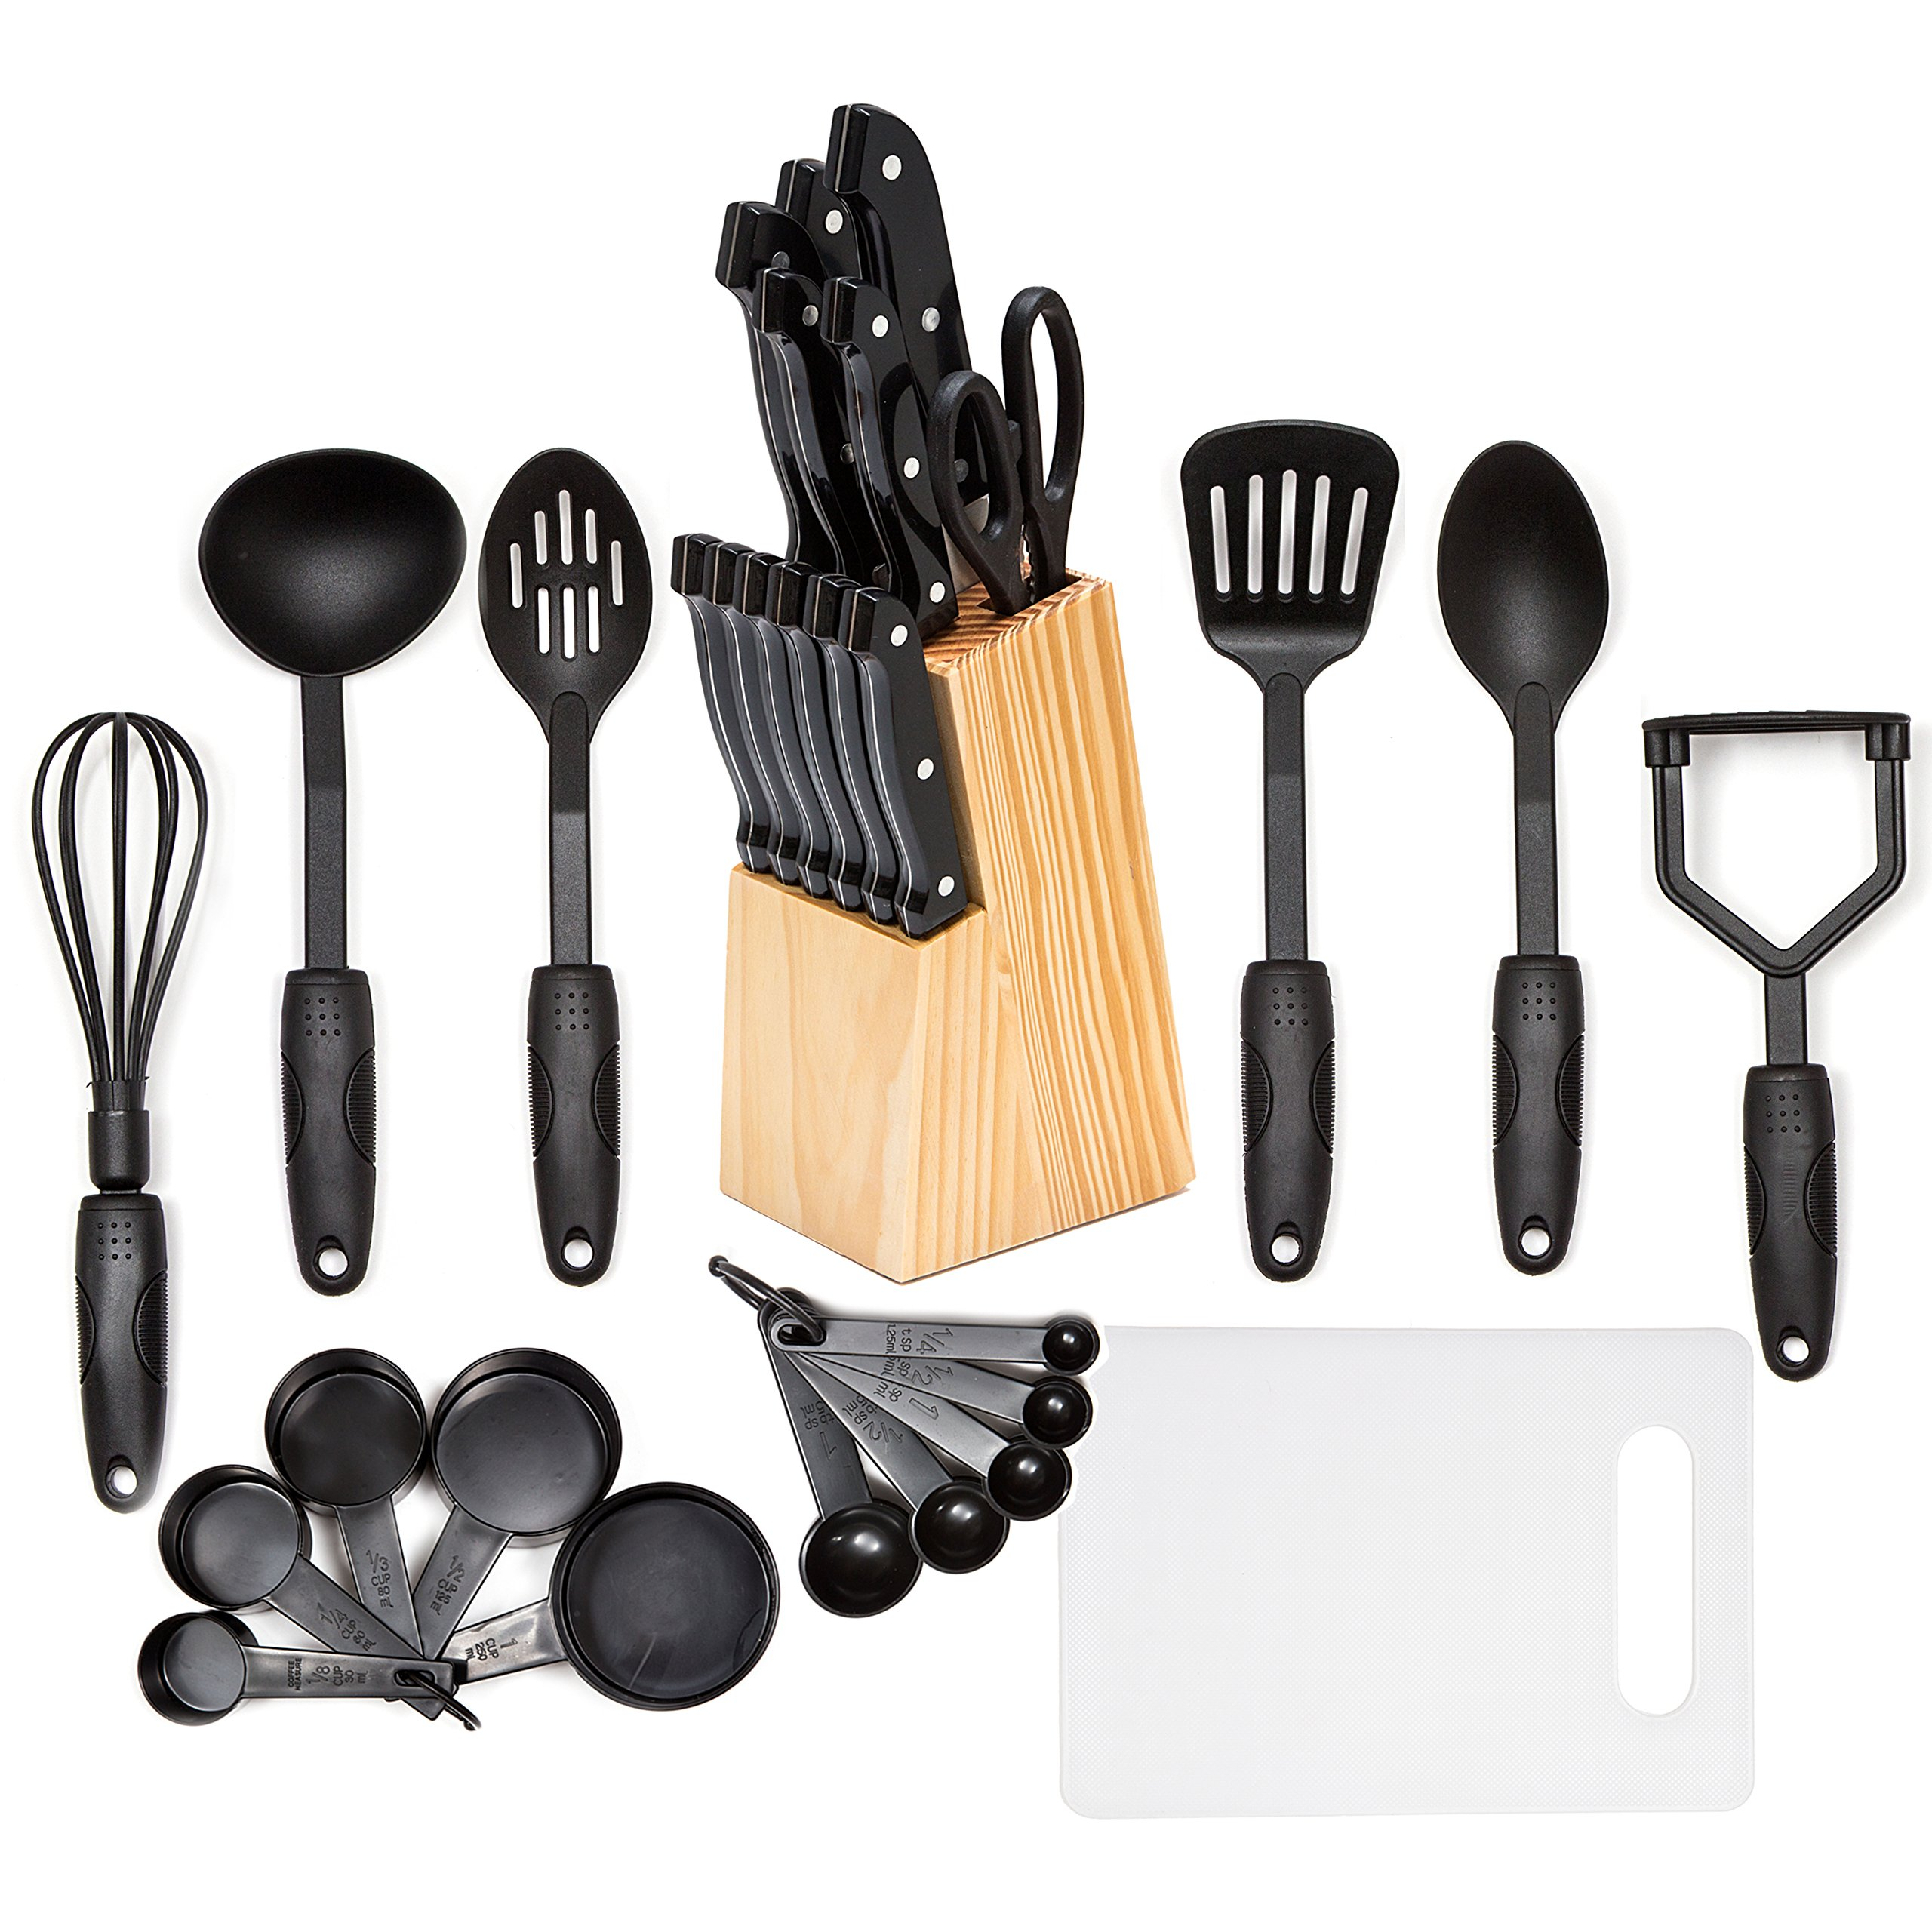 HULLR 30-Piece Kitchen Utensils and Knife Block Set, All Purpose Cooking Tools Stainless Steel & Nylon by HÜLLR